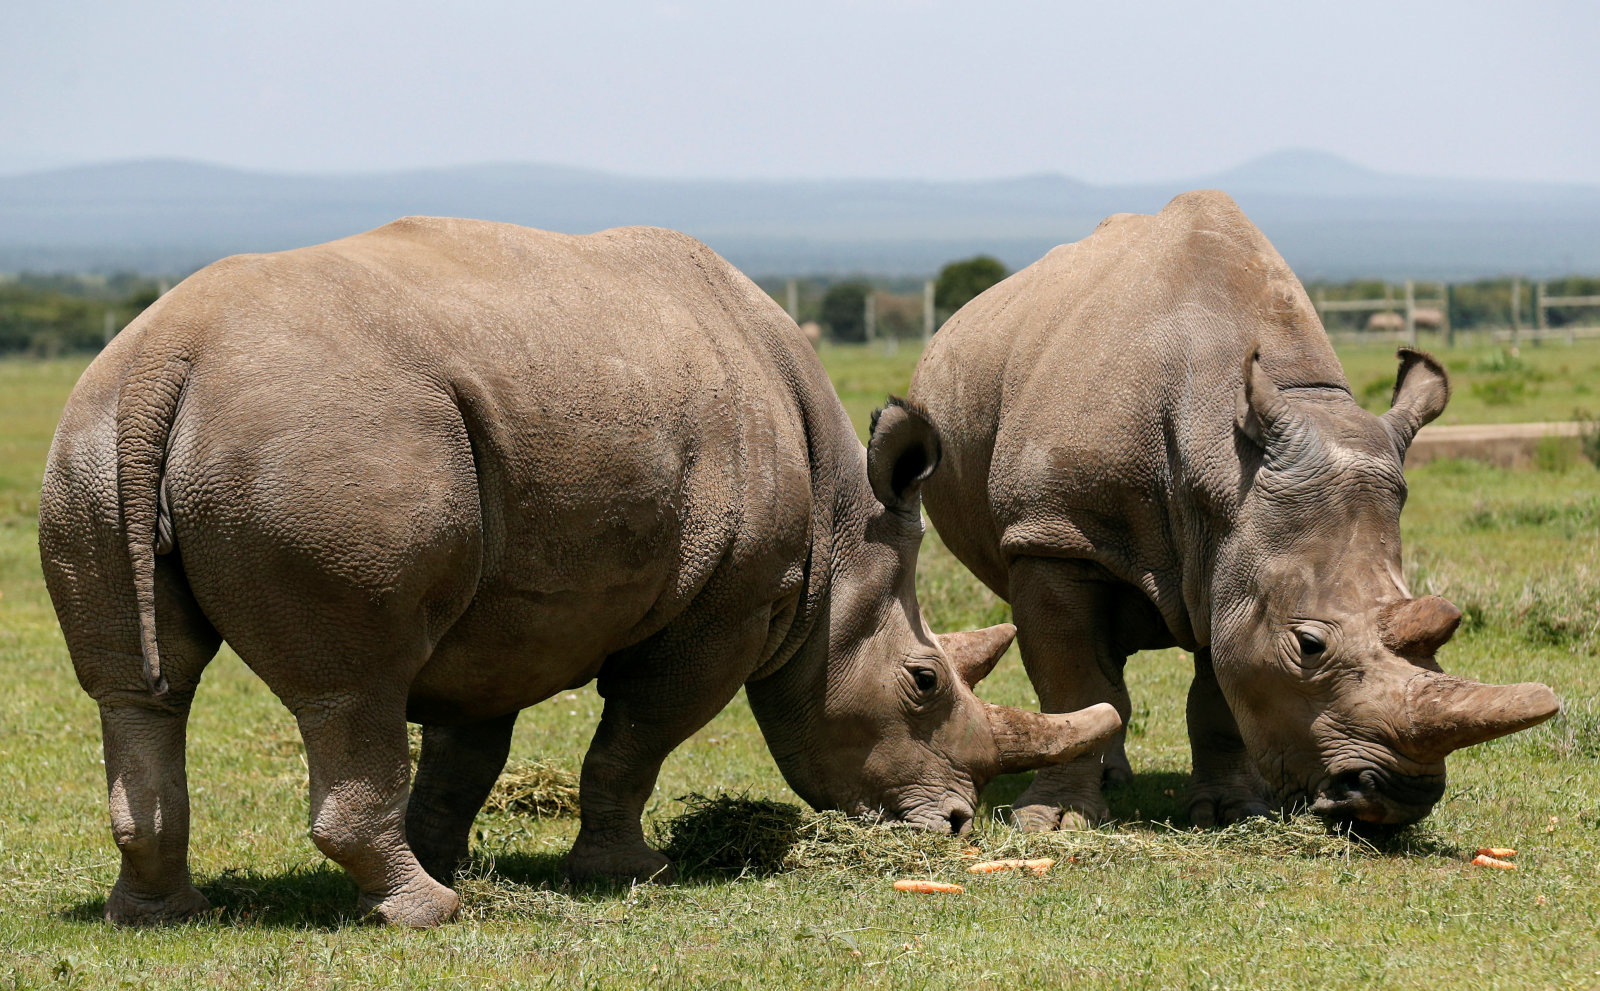 Najin (R) and her daughter Fatou, the last two northern white rhino females, graze near their enclosure at the Ol Pejeta Conservancy in Laikipia National Park, Kenya March 31, 2018. REUTERS/Thomas Mukoya